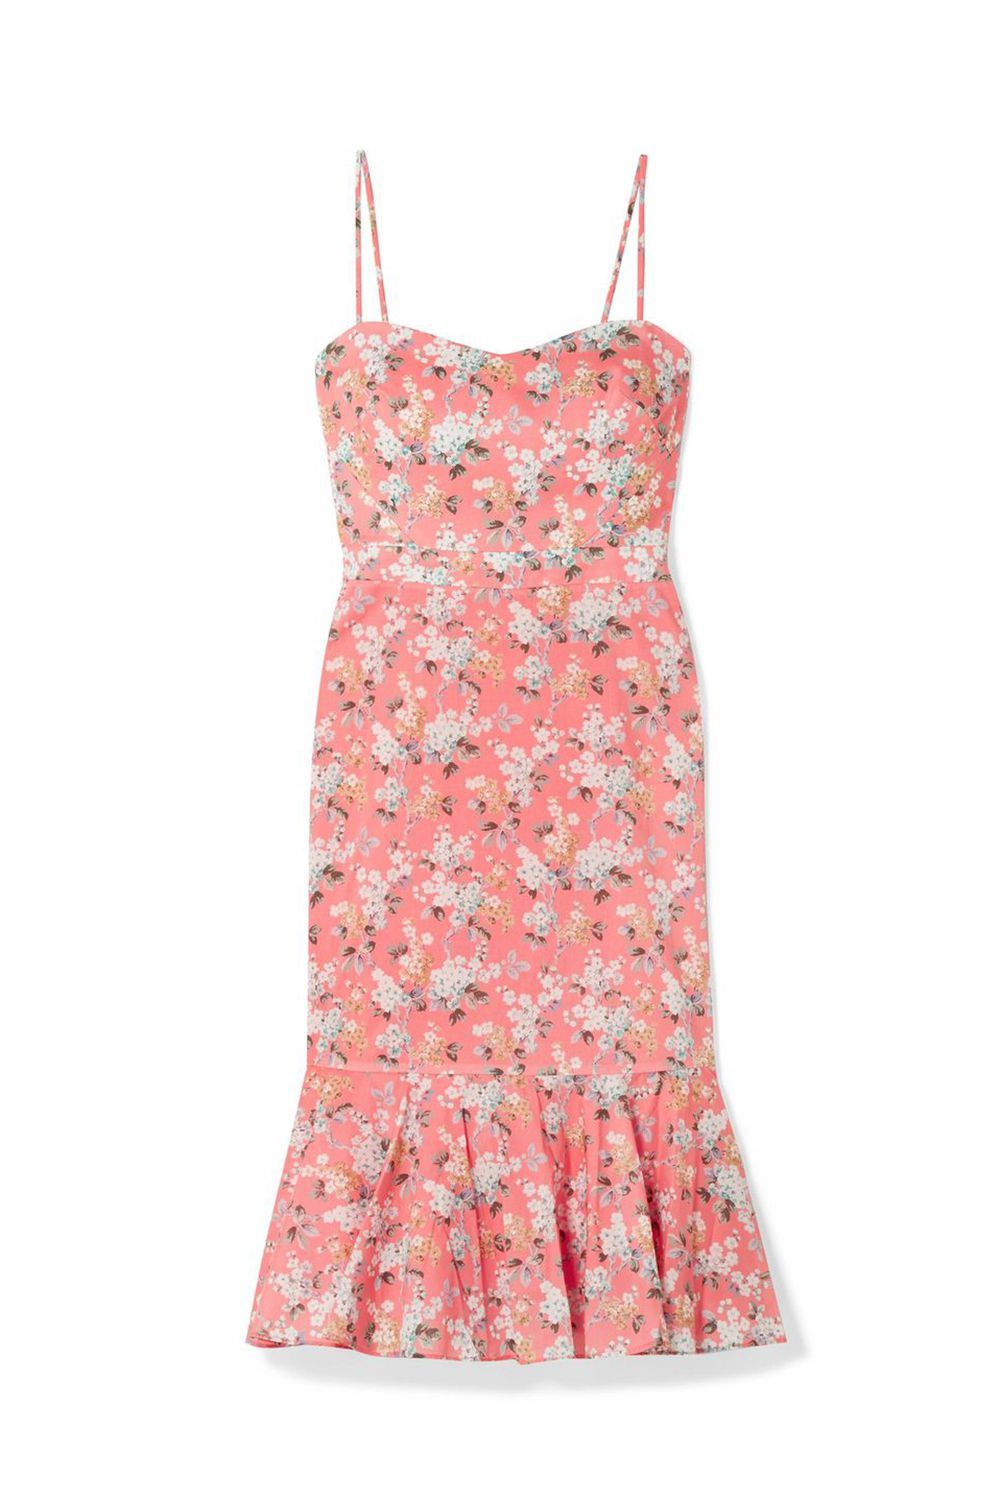 Best for Backyard Weddings Tana Floral Print Dress J.Crew net-a-porter.com $200.00 $100.00 (50% off) SHOP IT Bless the friends who throw backyard weddings, so we don't have to overthink our outfits. Grab your favorite floral dress (perhaps it's this one from J.Crew?) and throw on some sandals for the easiest look you'll put together this wedding season.